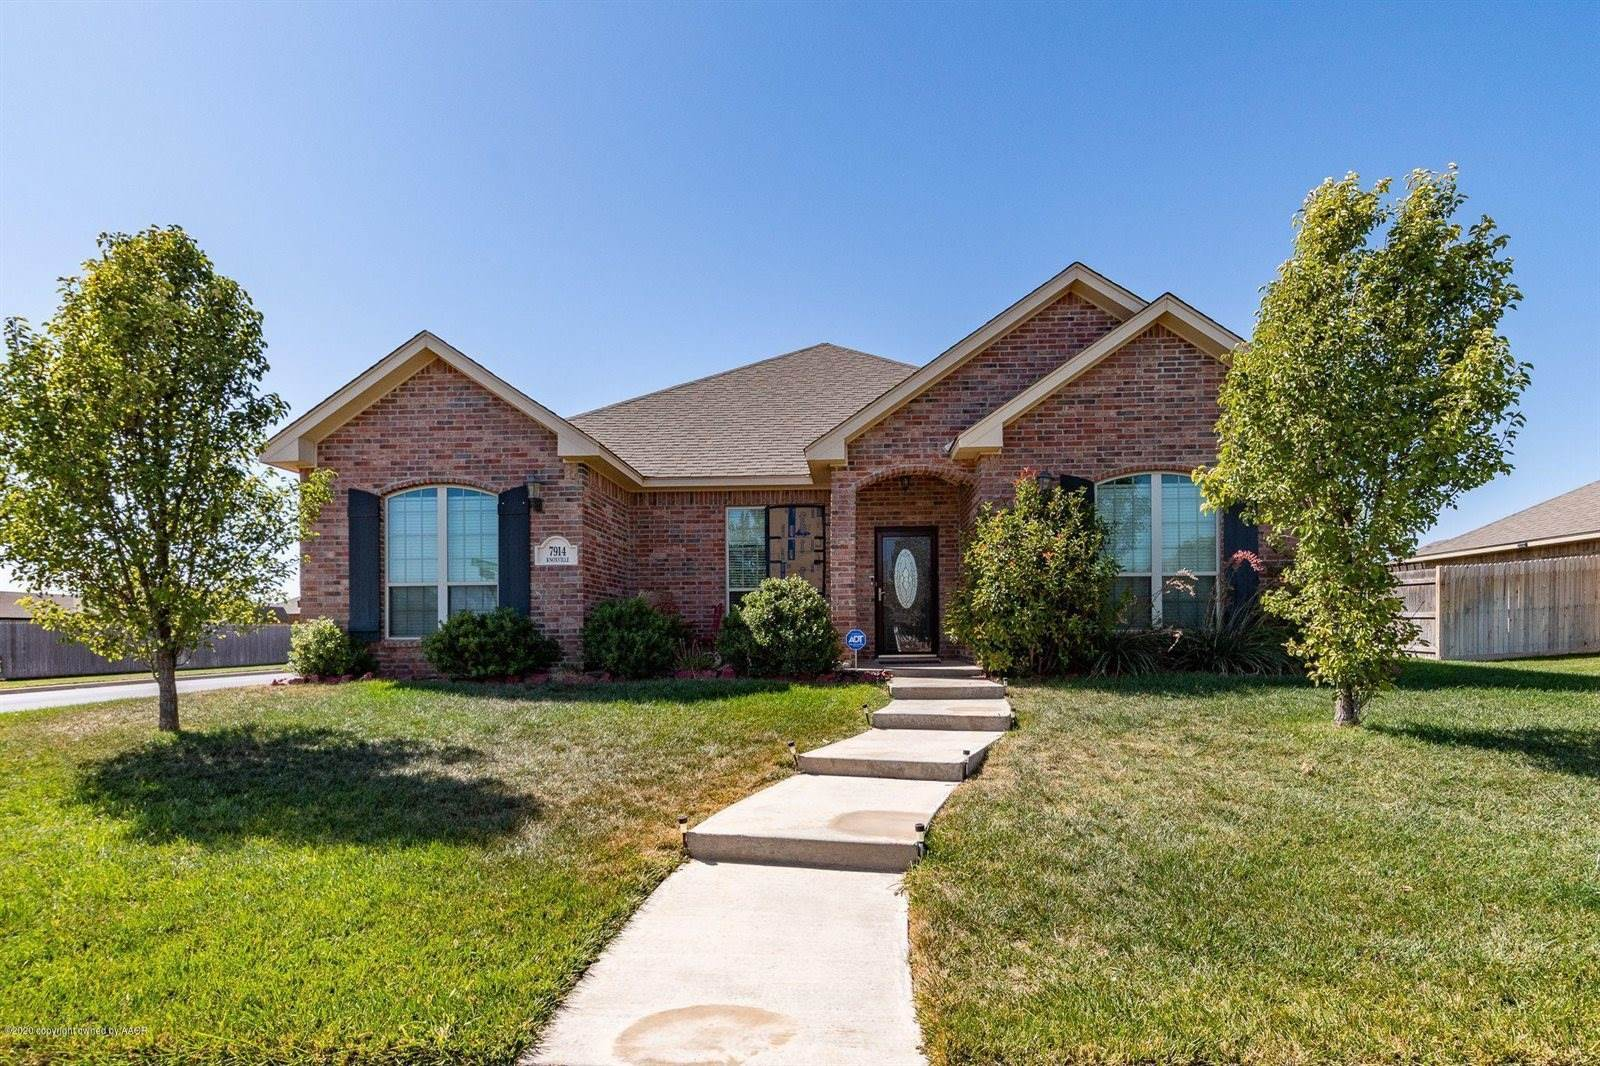 7914 Knoxville Dr, Amarillo, TX 79118